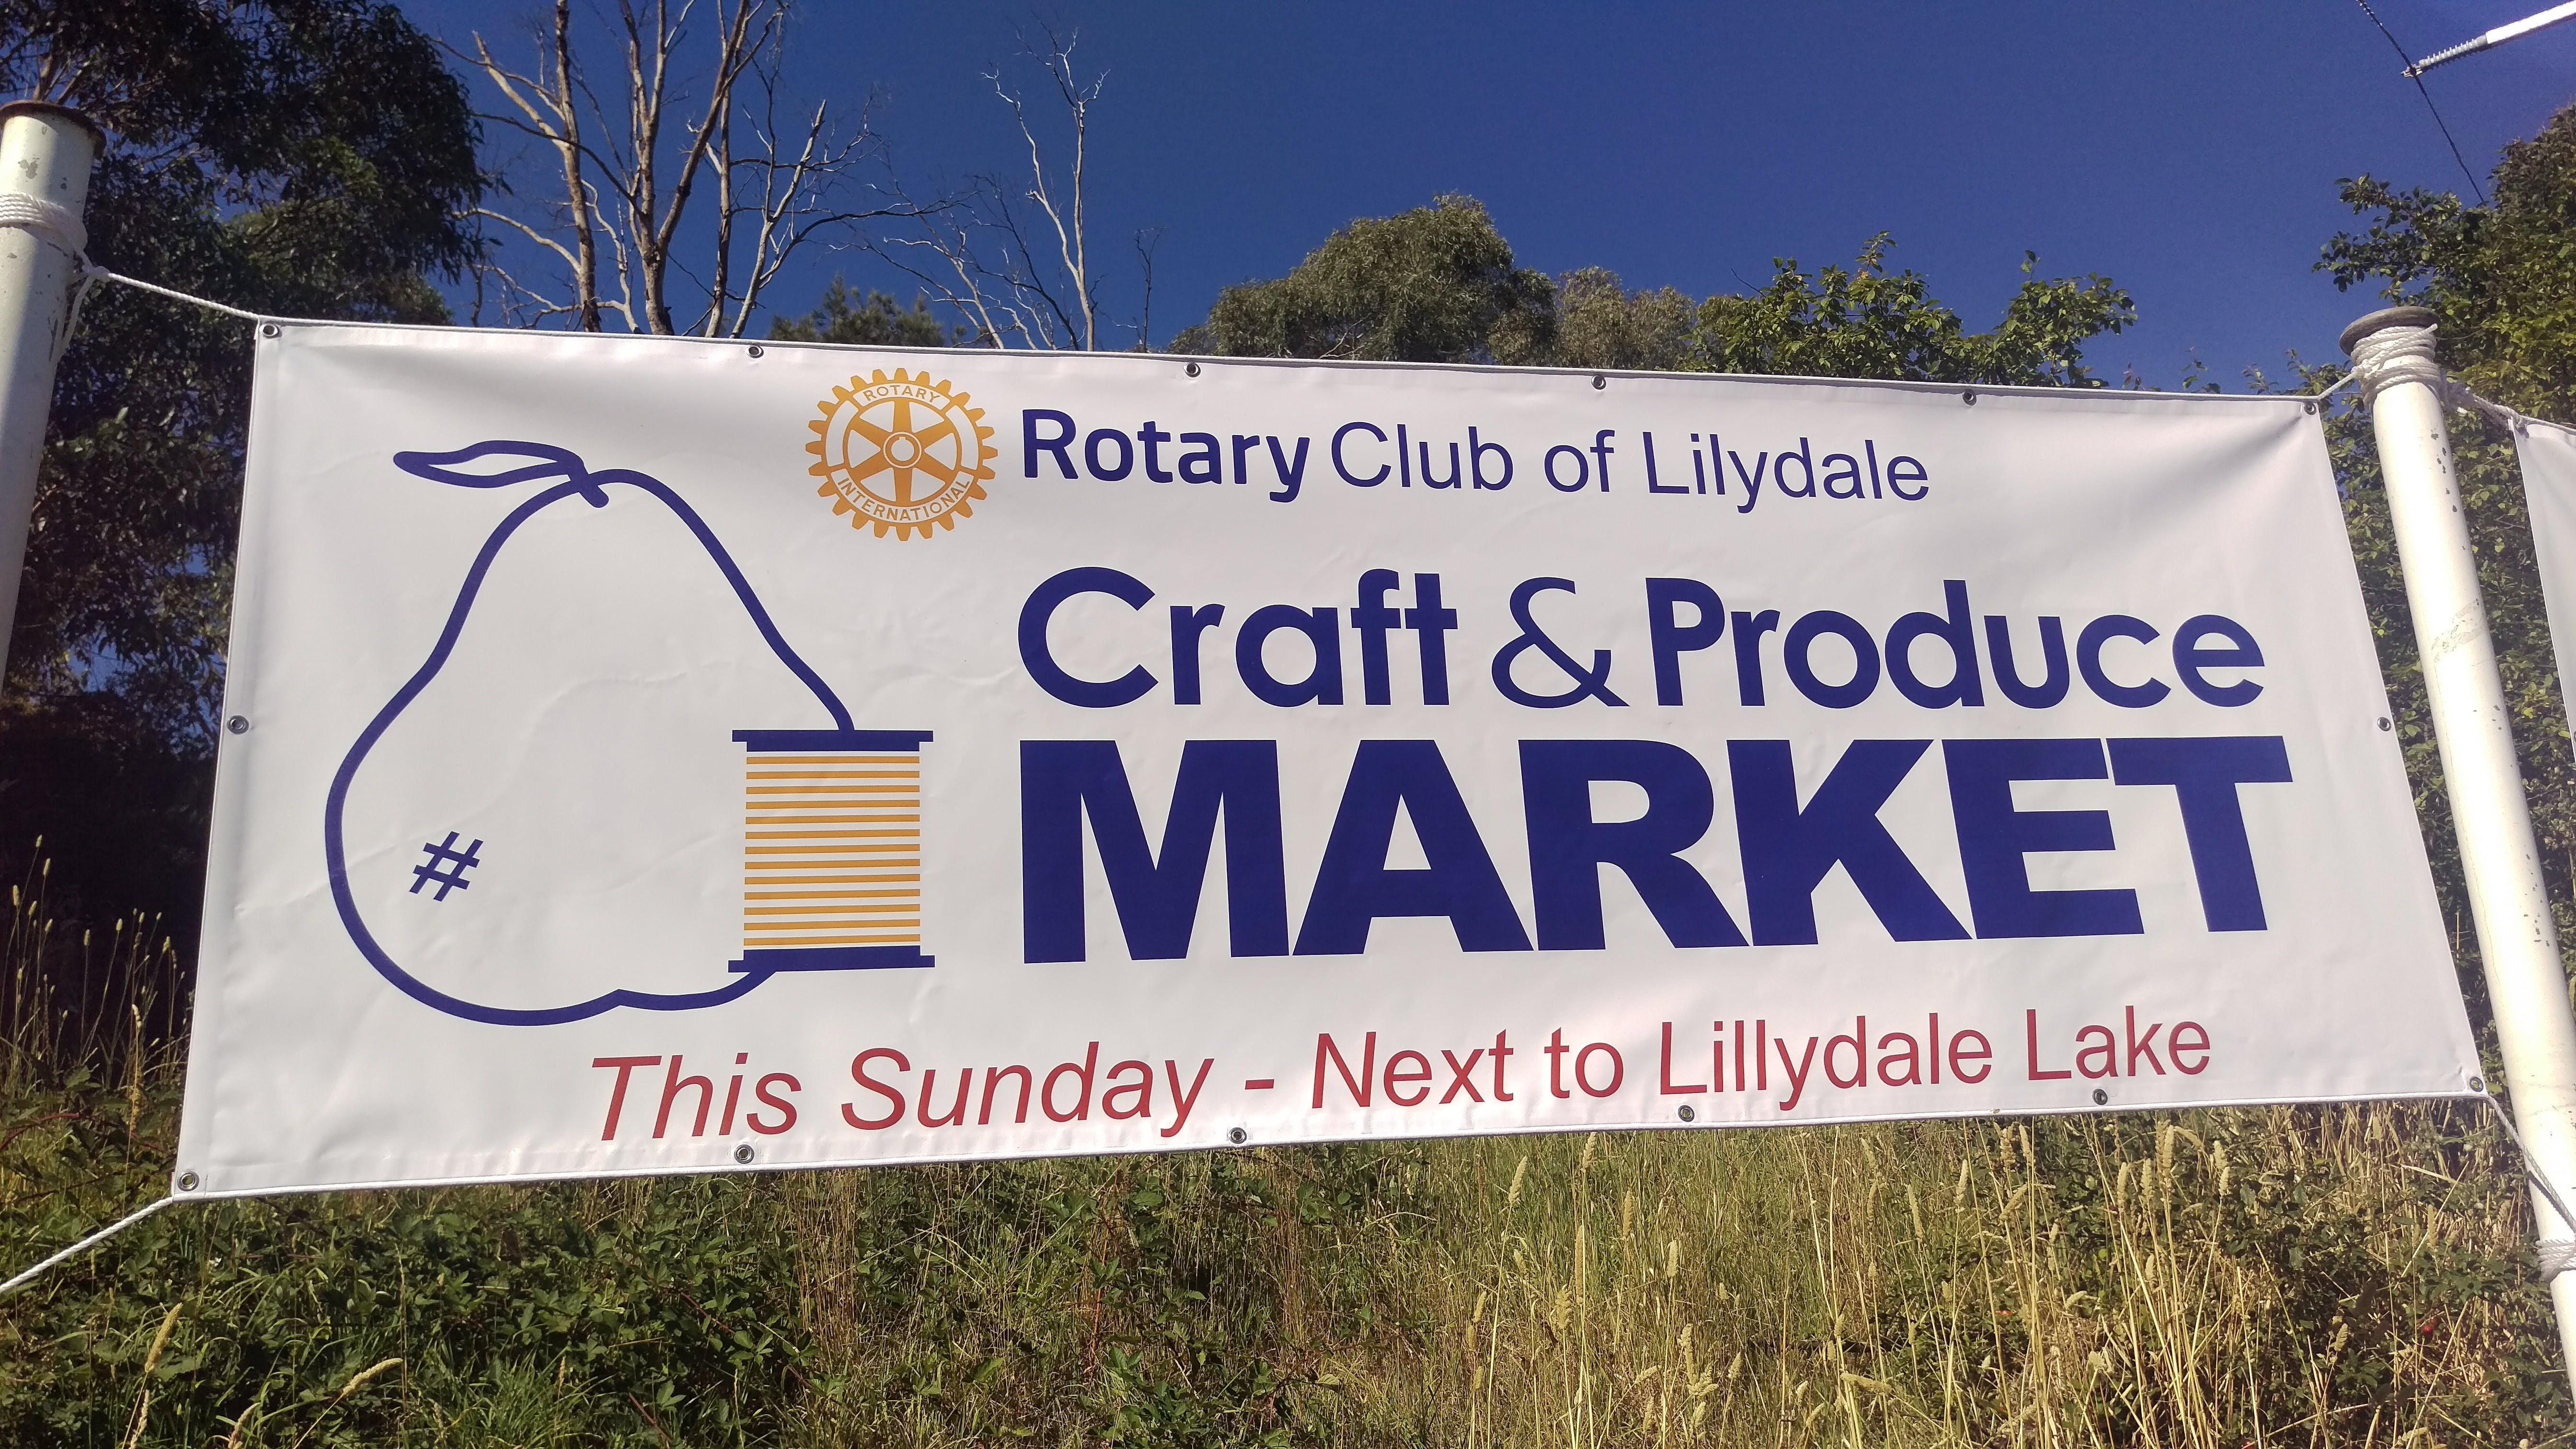 Rotary Club of Lilydale Craft and Produce Market - Restaurants Sydney